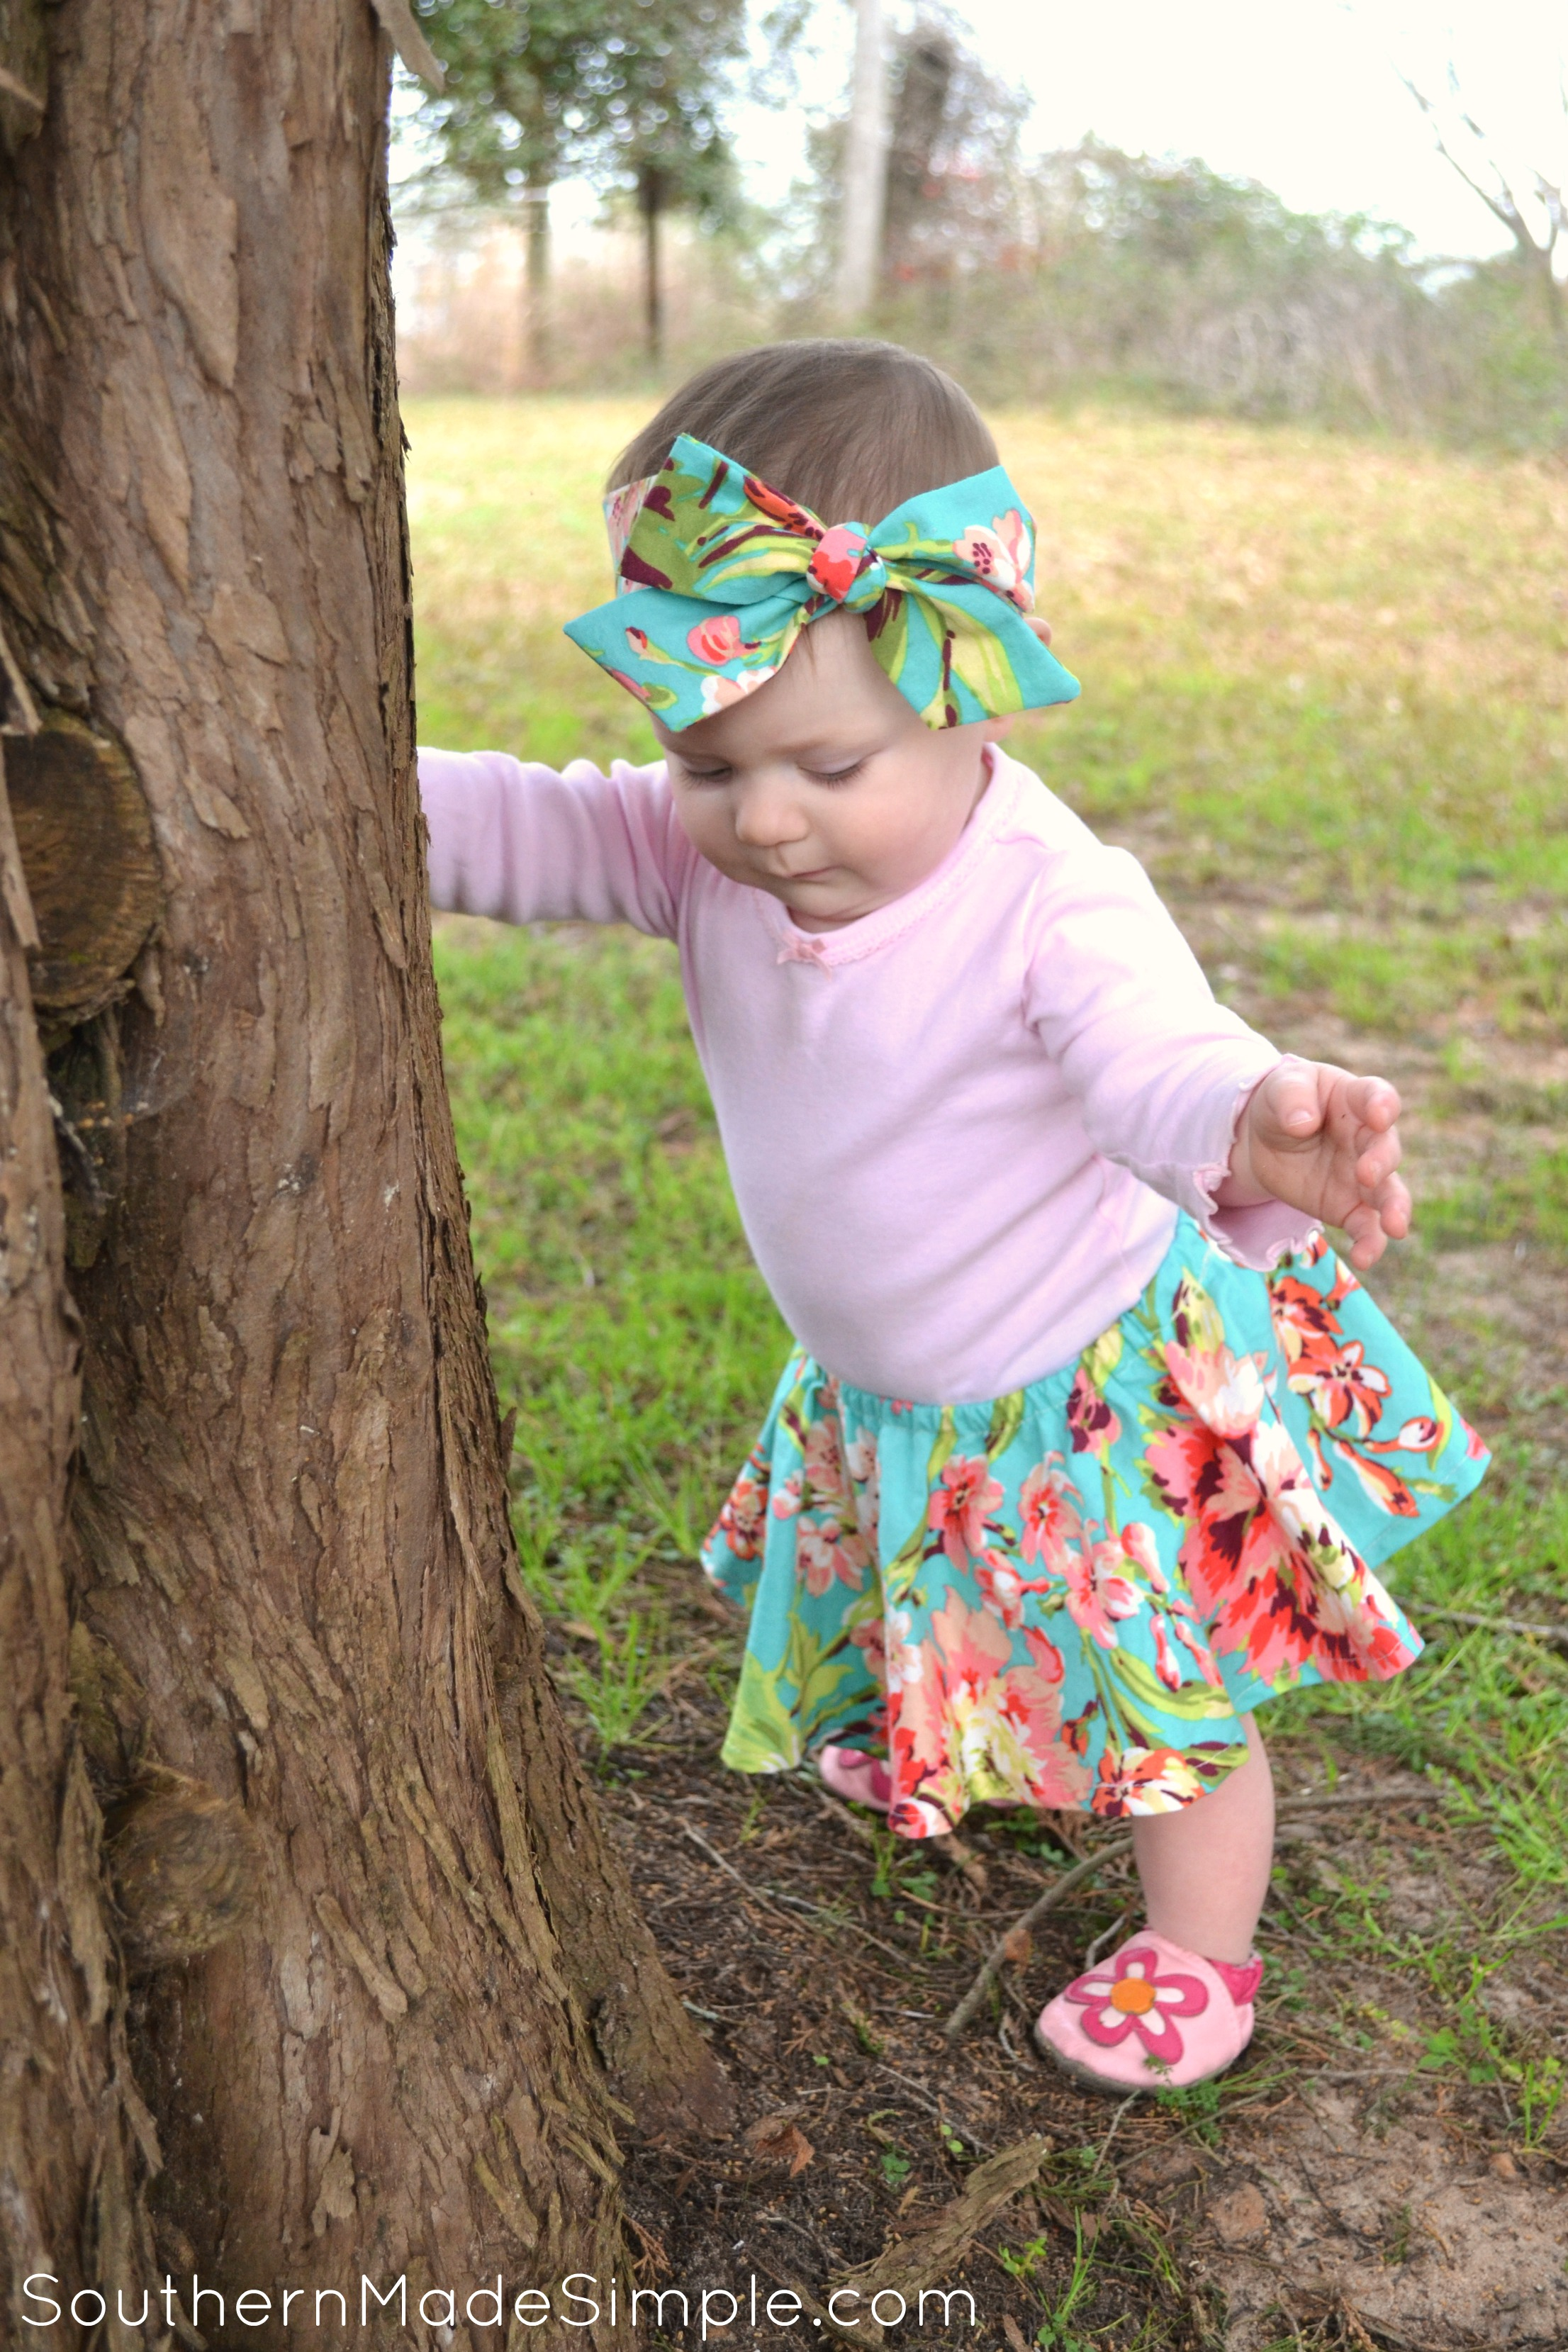 The Lucky Lily has some of the CUTEST little outfits for both girls and boys! + Enter to WIN a $20 shopping spree on Southern Made Simple! US Ends 4/4